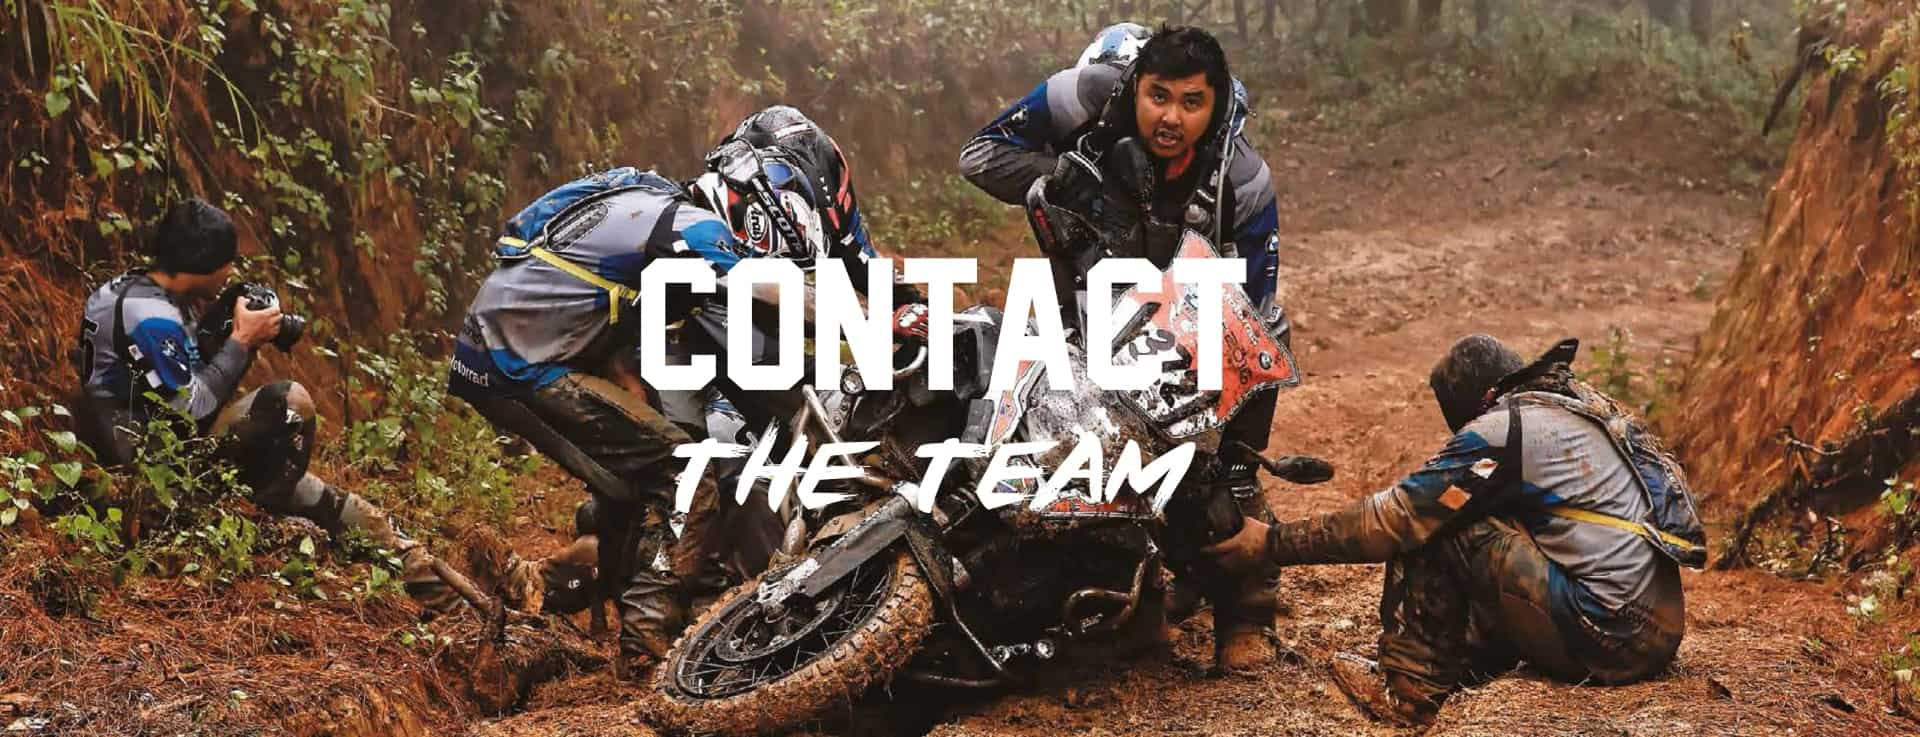 contact rust sports